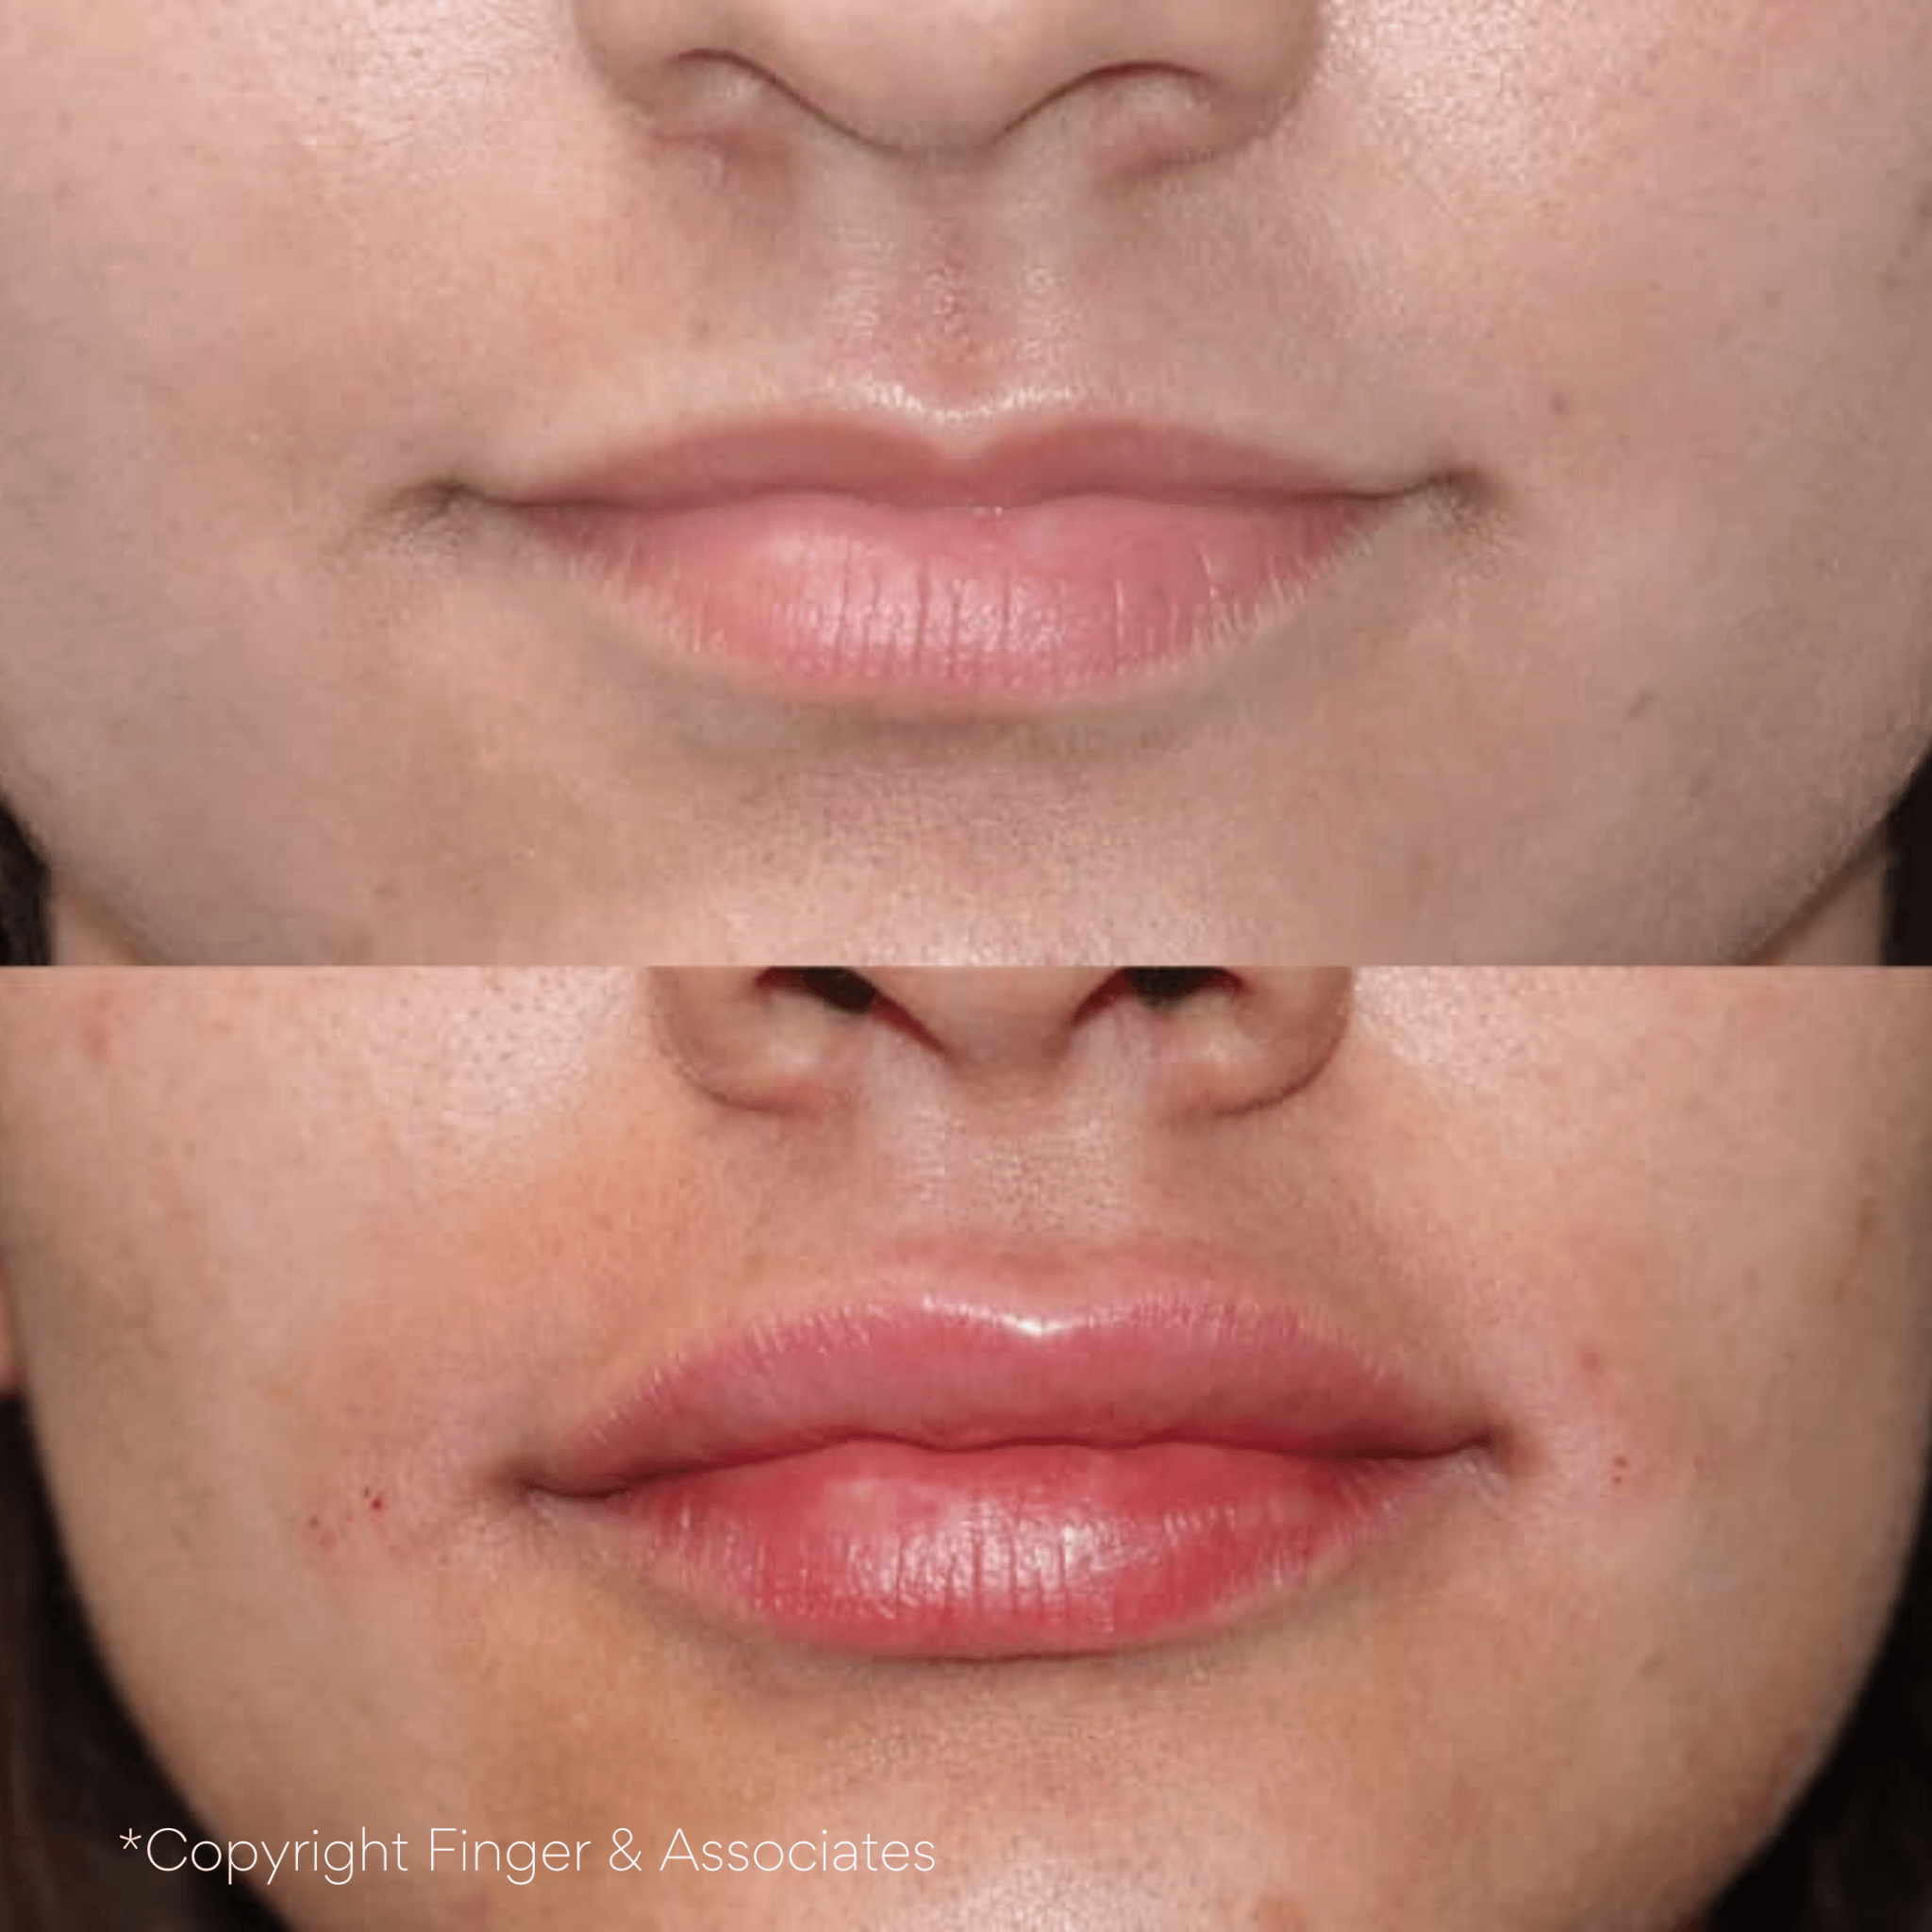 Before and after one syringe of Restylane Kysse - Swelling will subside